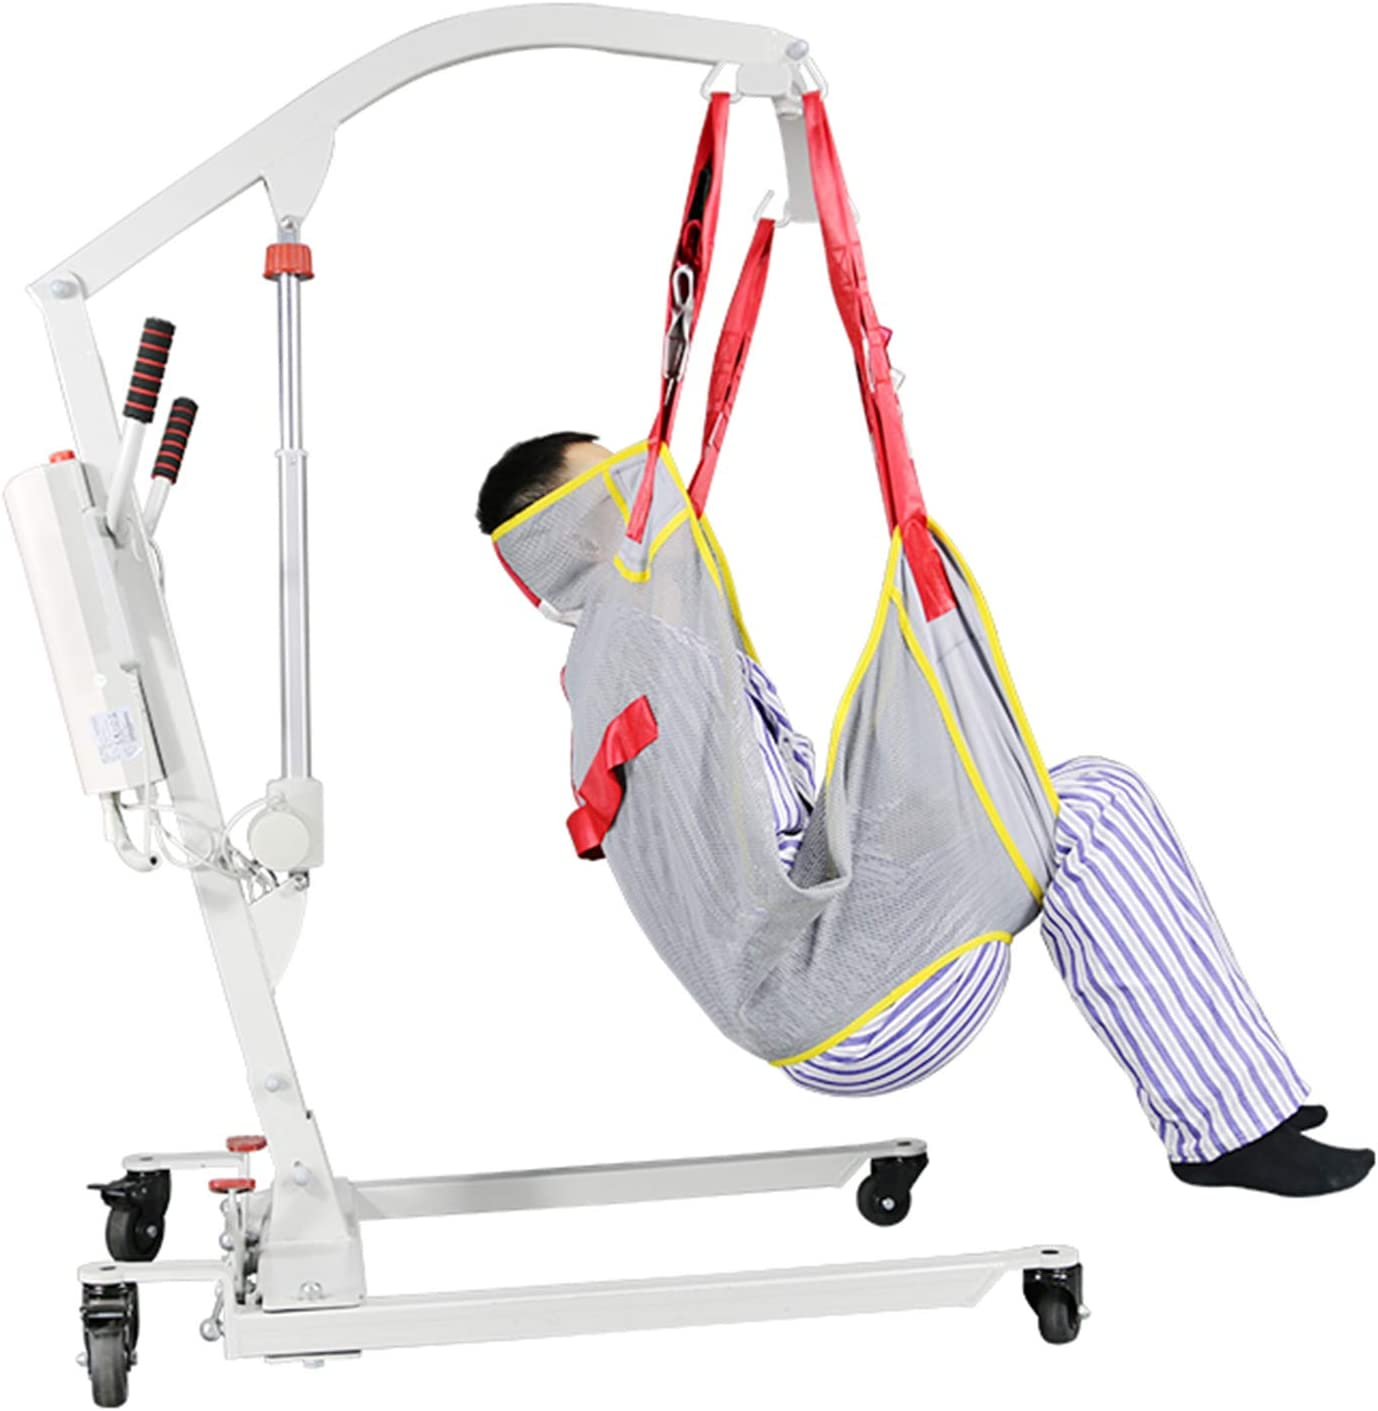 FC-Bed Potent Electric Patient Hoist Lift Medical Crane Lifting for Home Care with Sling, Assembling-Free, 400Lb Weight Capacity